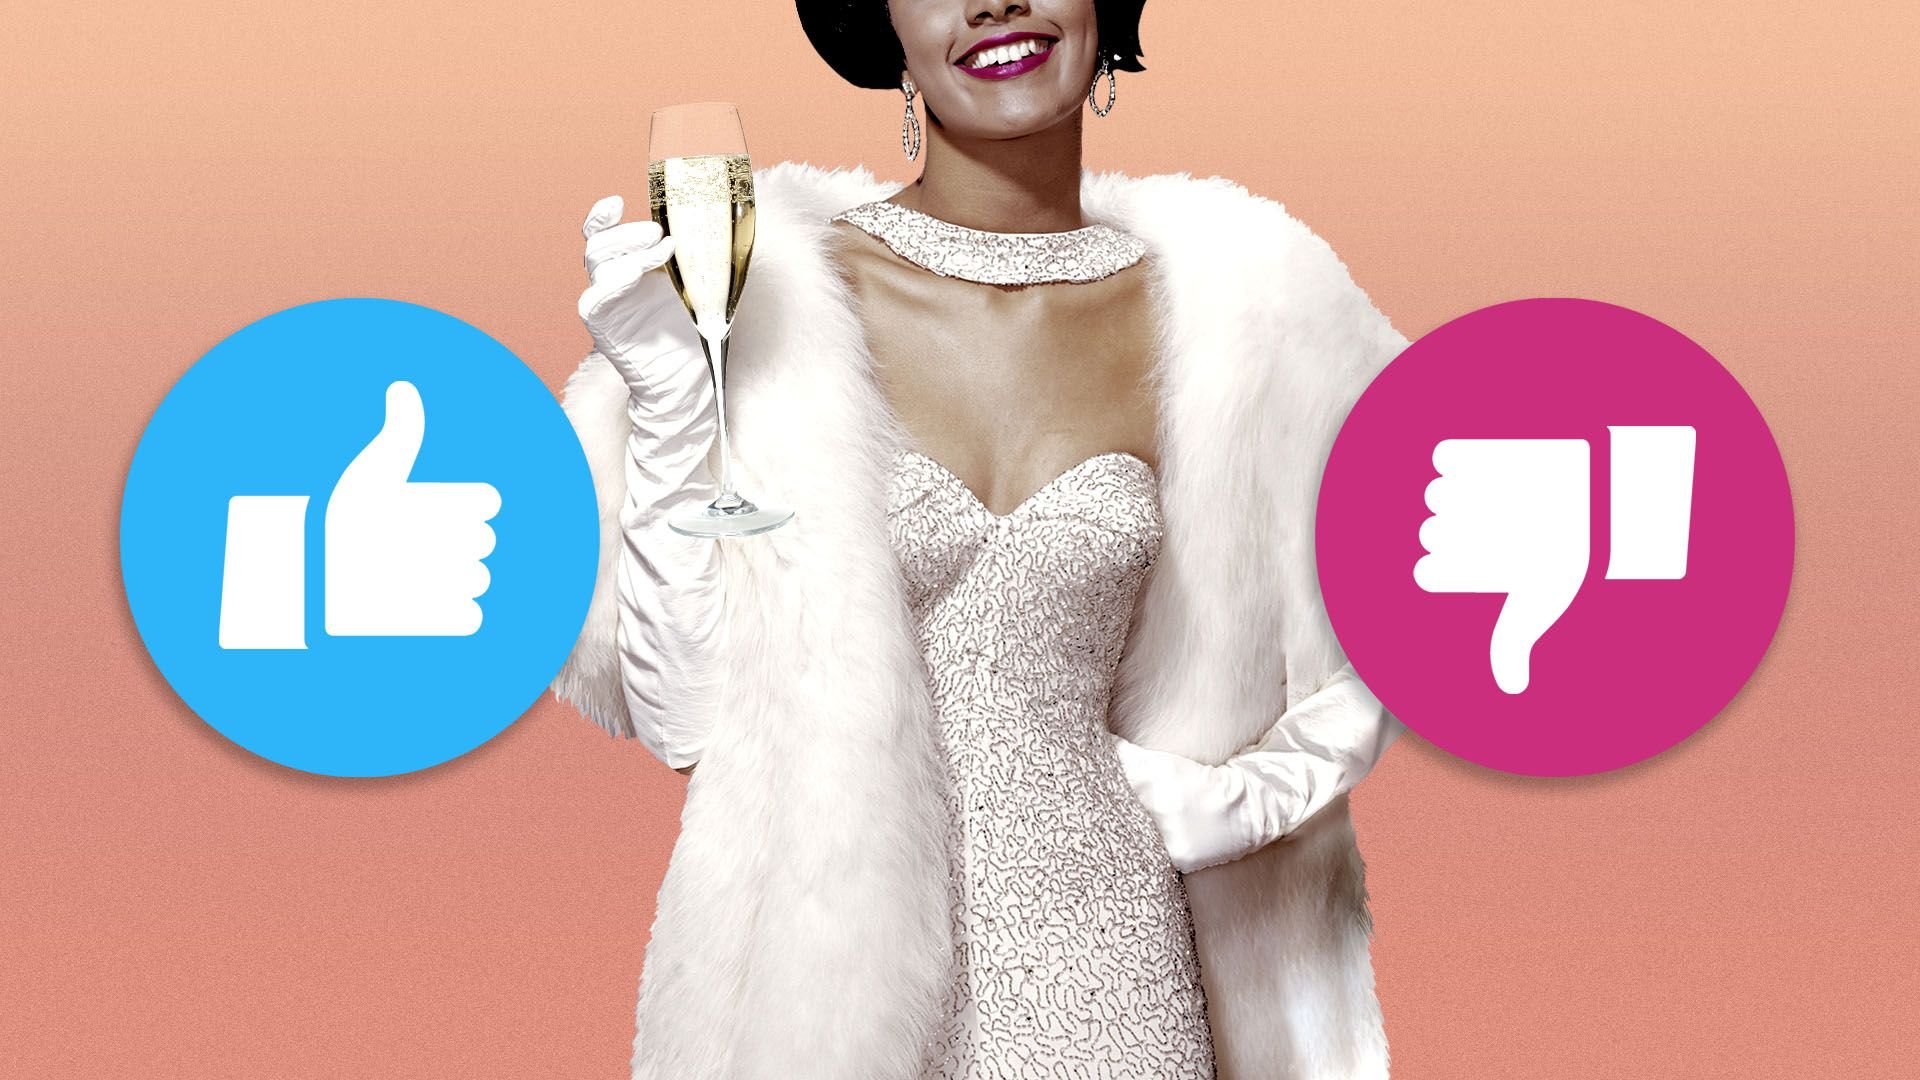 Illustration of wealthy woman in fur coat with like and dislike icons next to her